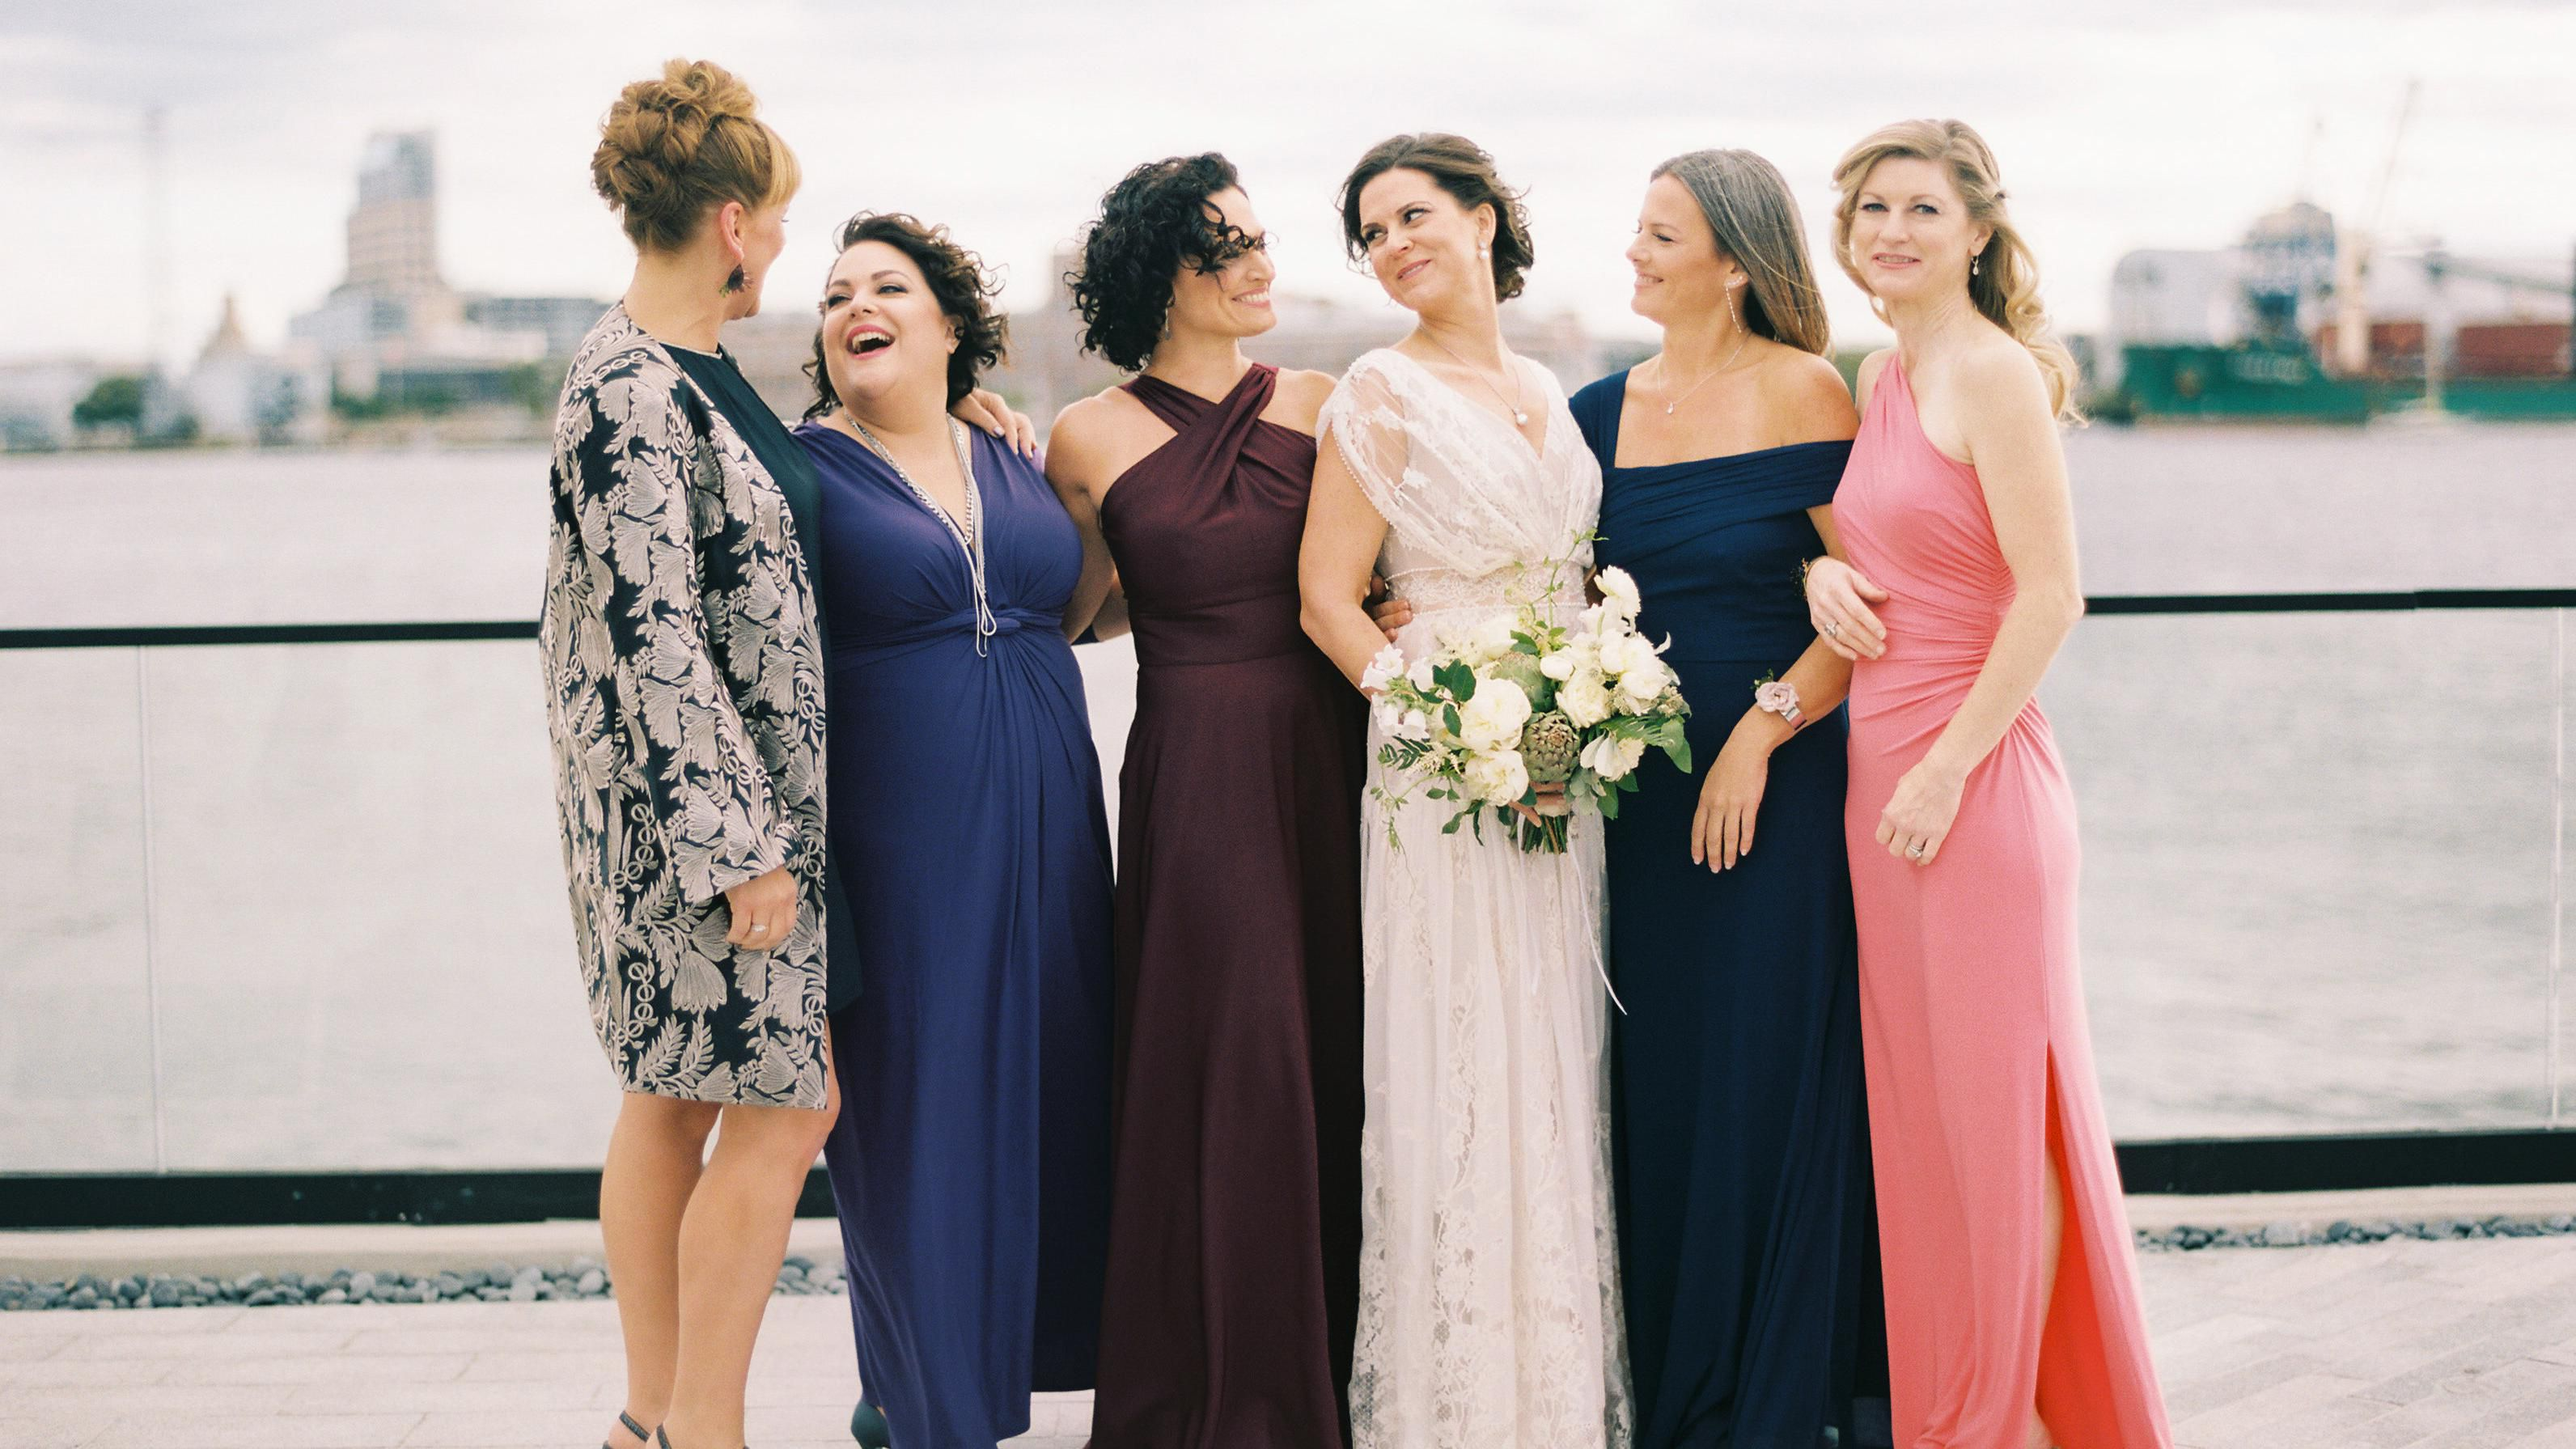 5 Unique Bridesmaid Color Pairings For A Fall Wedding